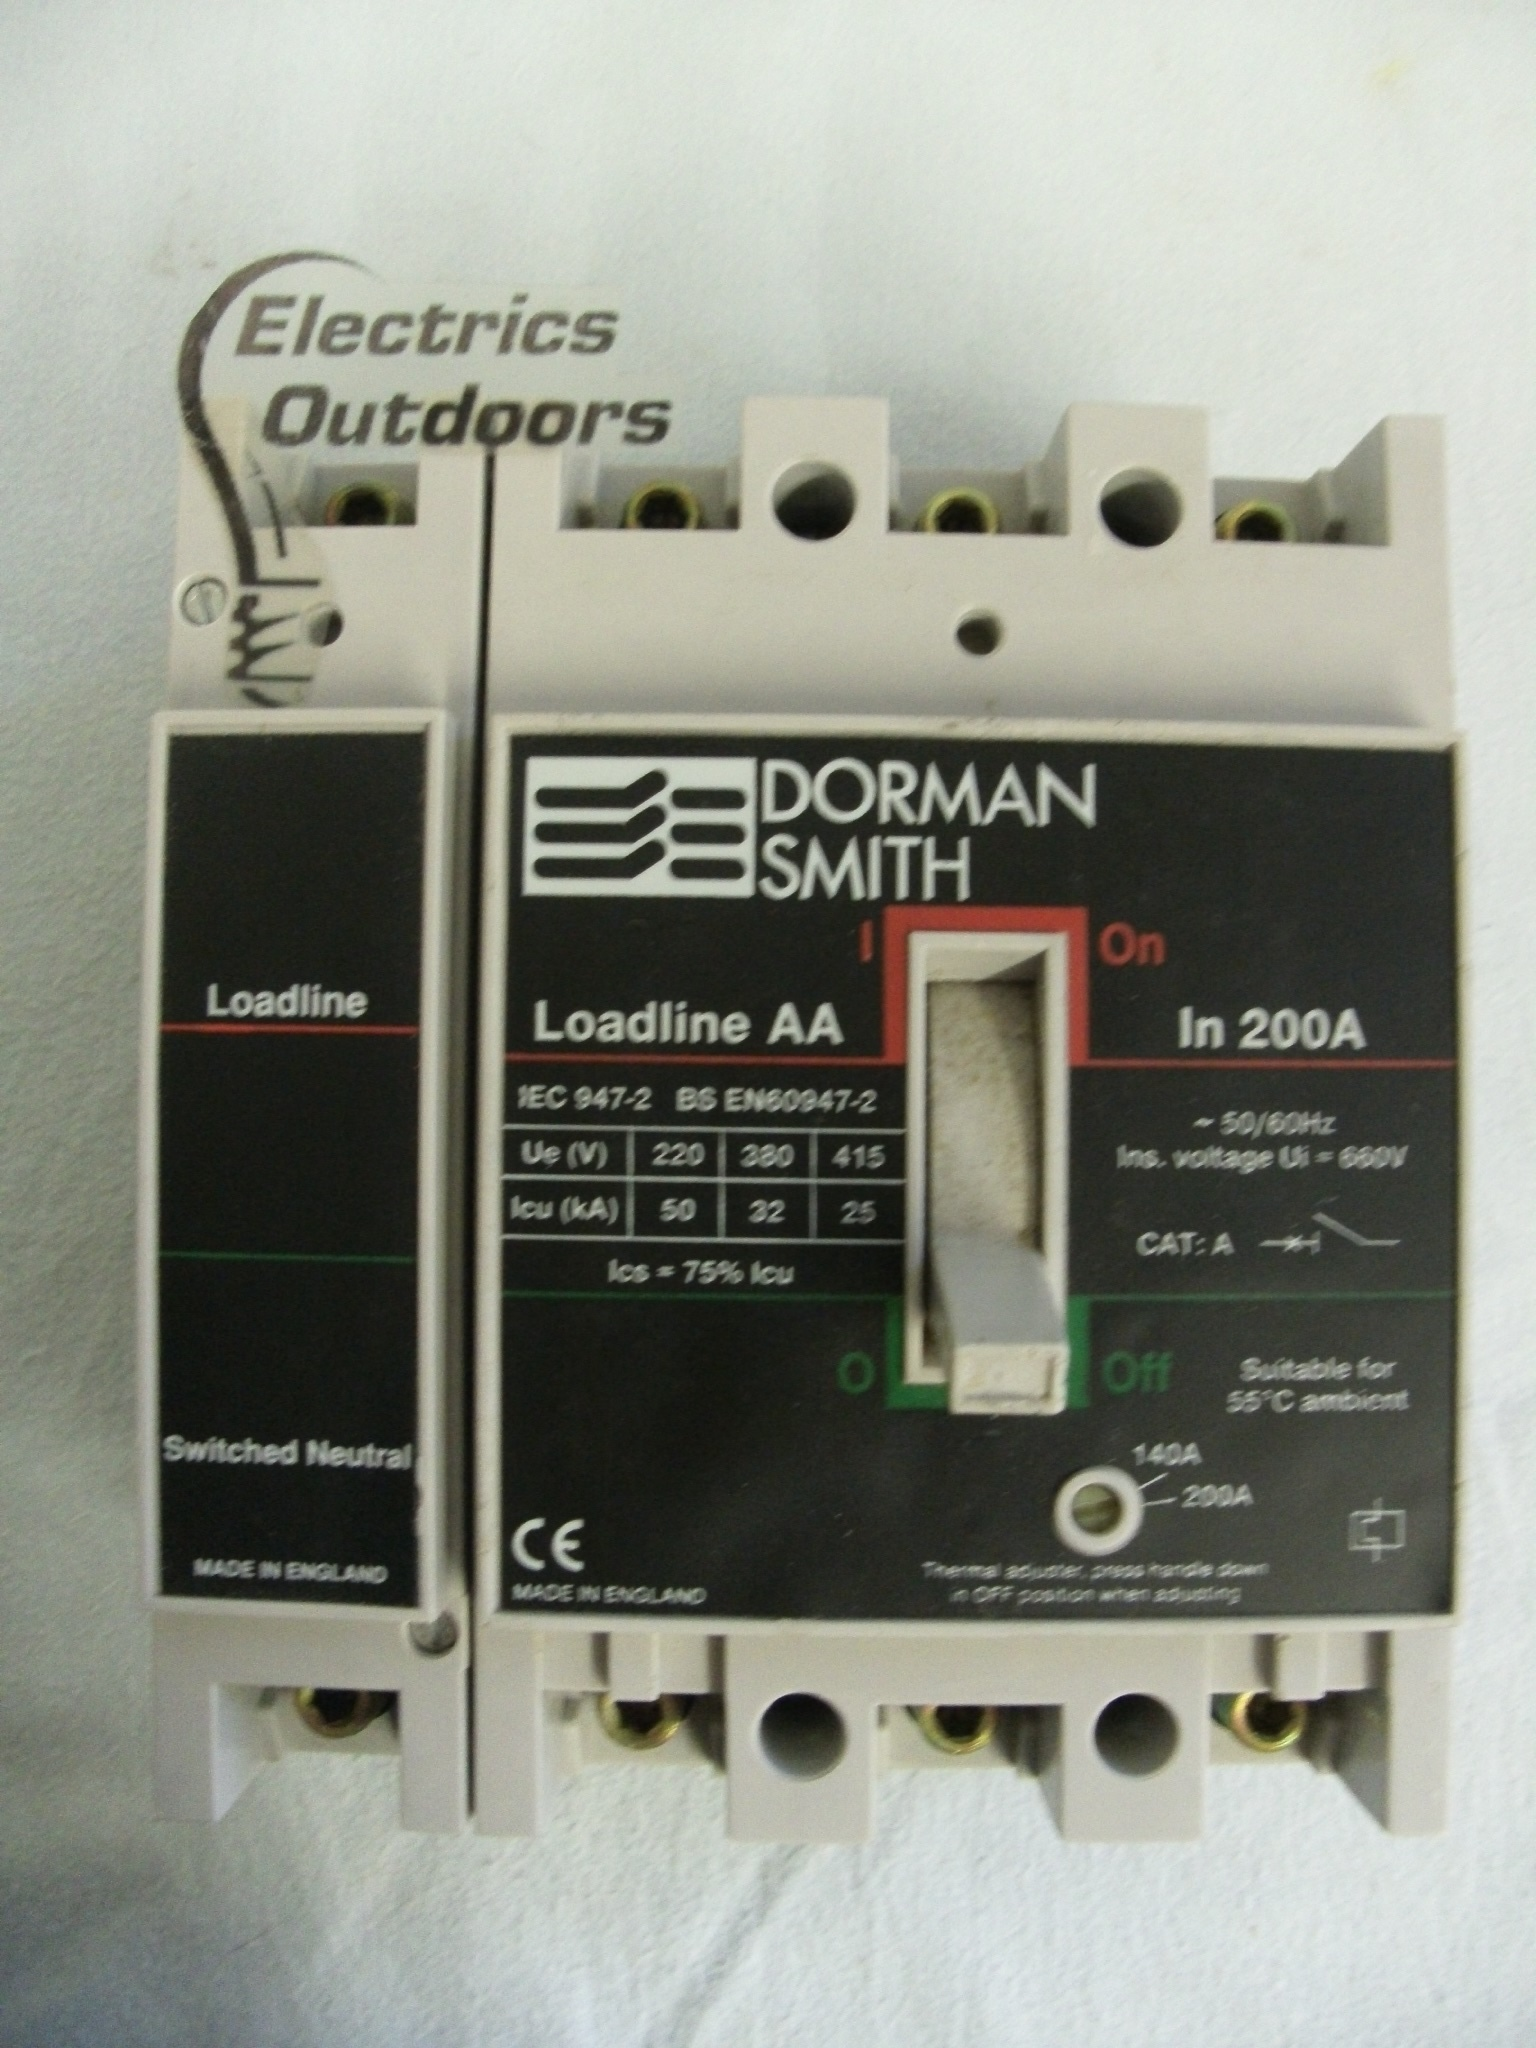 DORMAN SMITH 200 AMP 25 kA FOUR POLE MCCB LOADLINE AA LLBAATN200 BS EN 60947